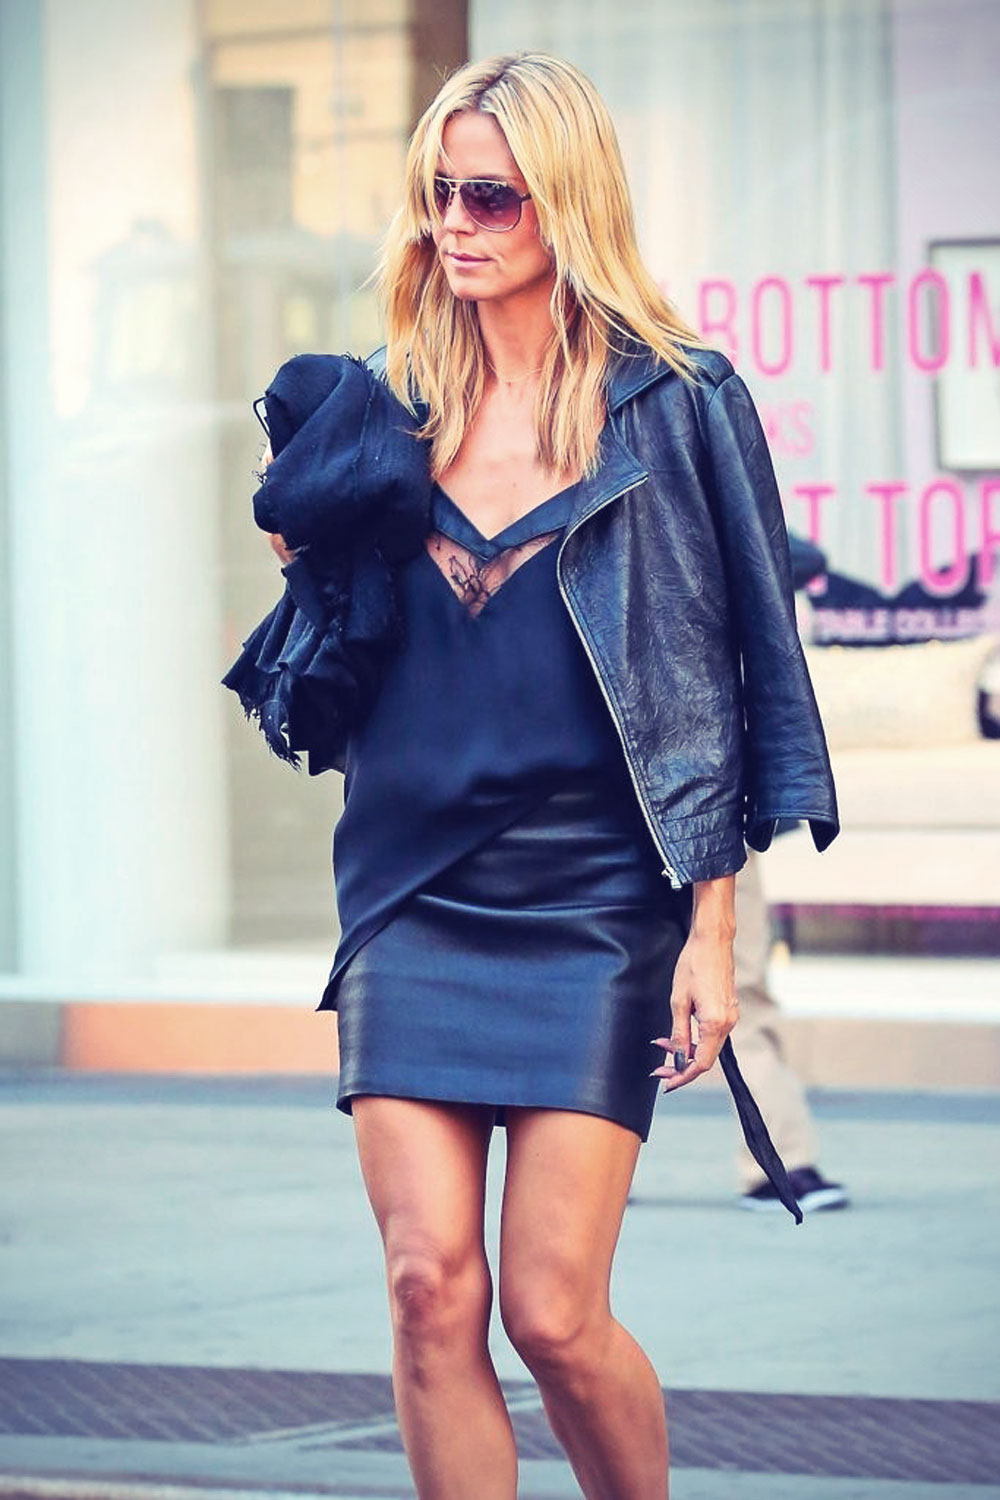 Heidi Klum walking through Soho